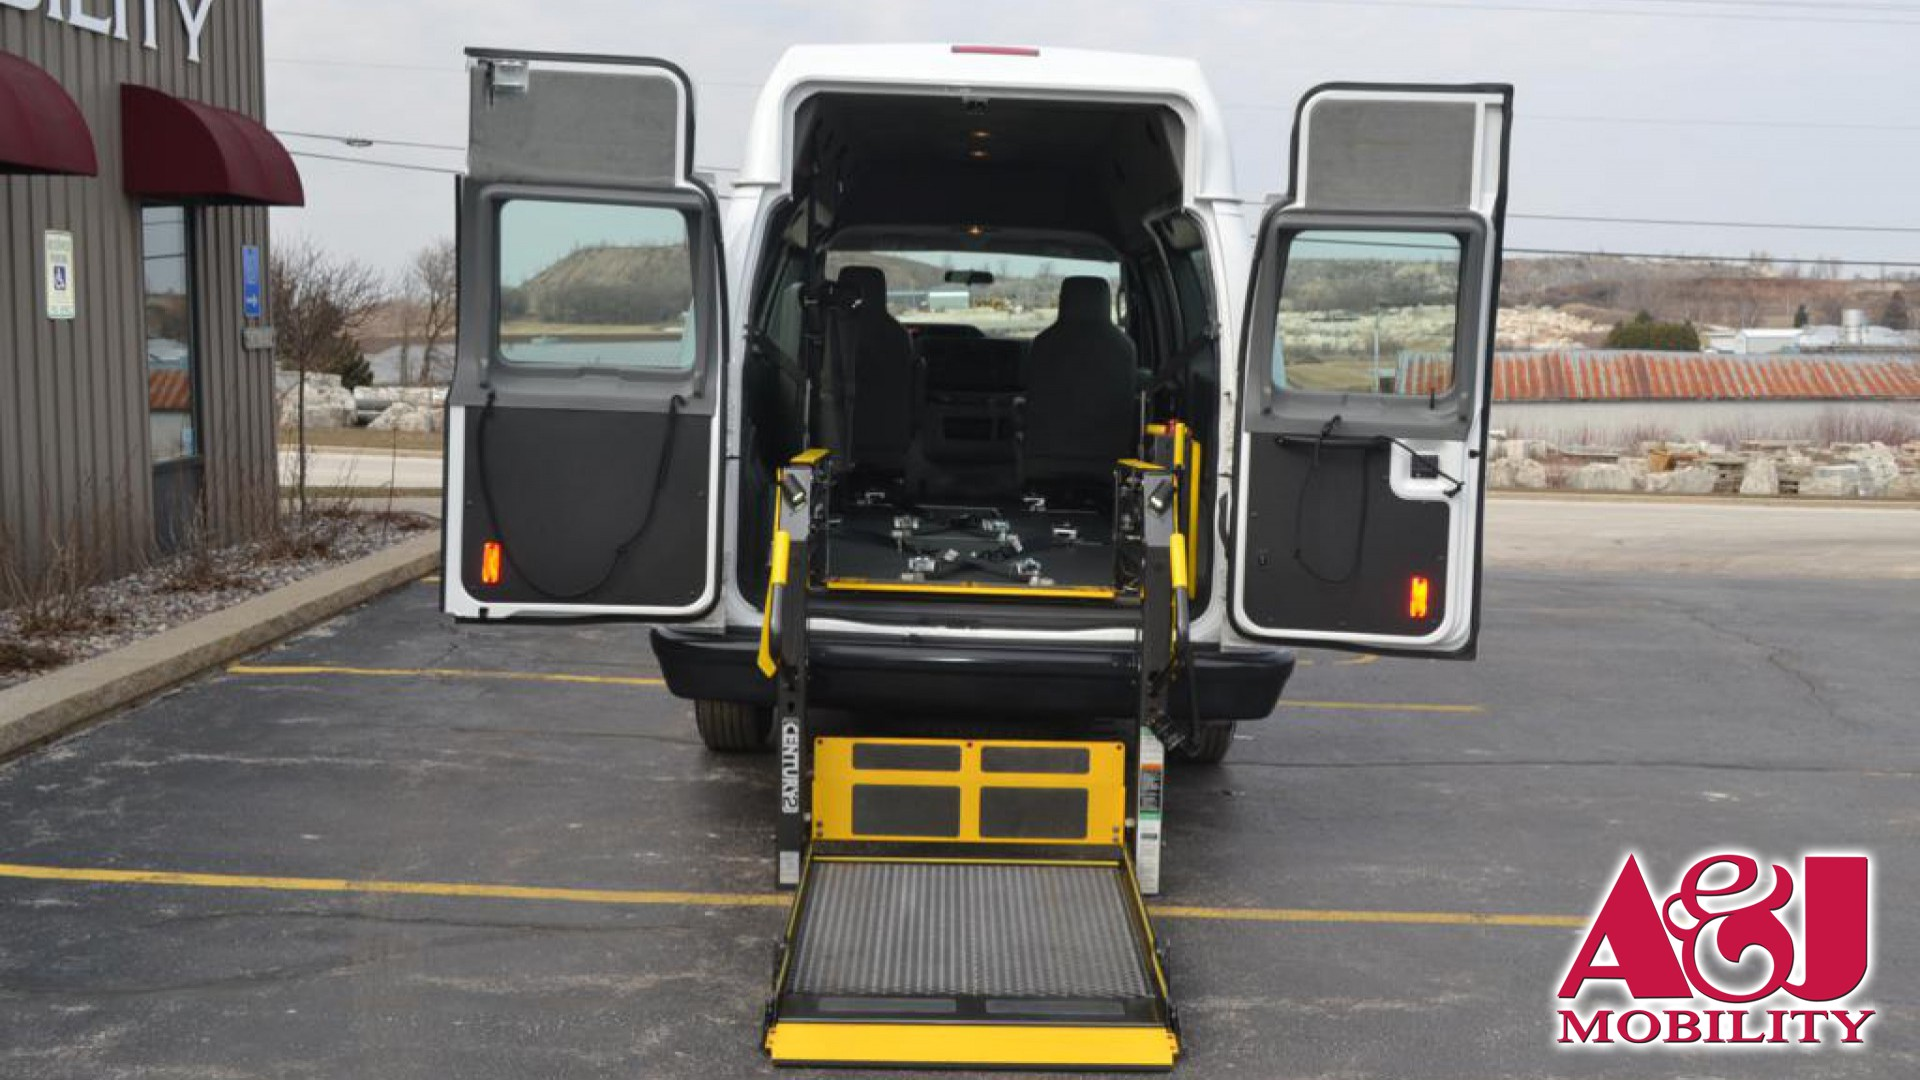 2013 Ford E-250 | Conversion: A&J Ford Transit